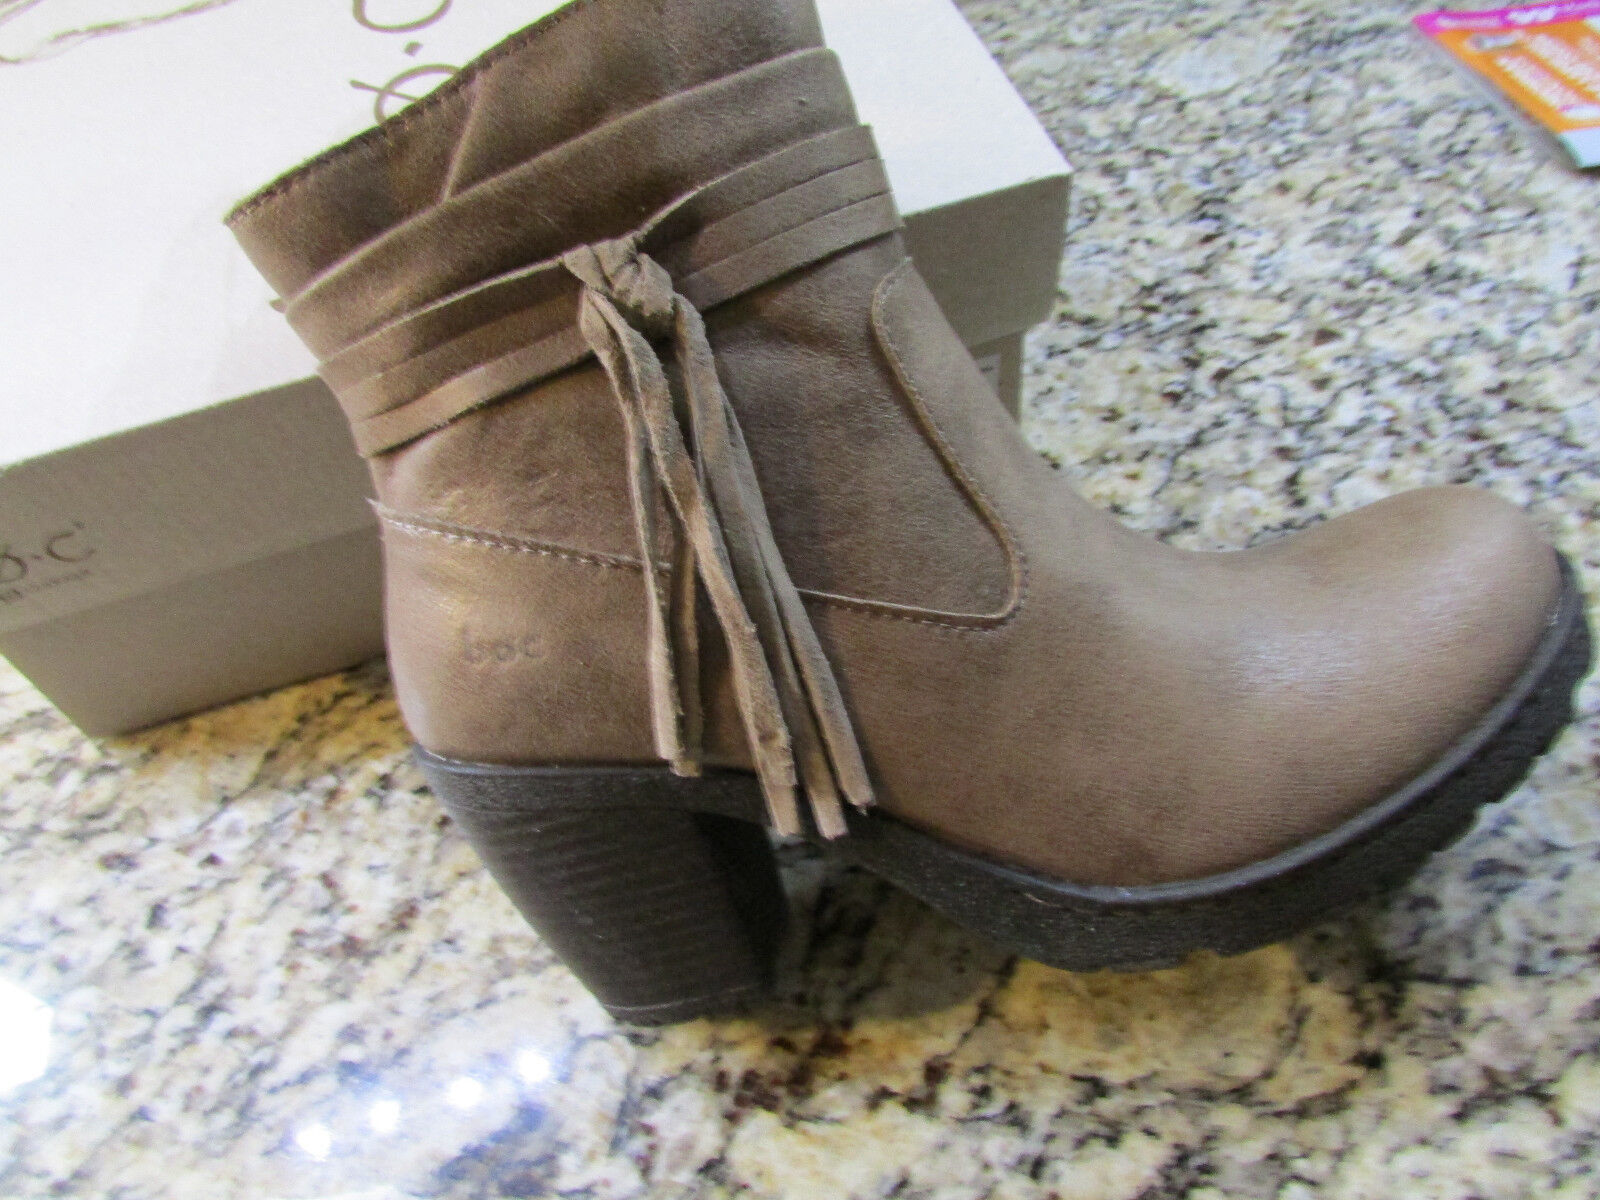 NEW BORN B.O.C ALICUDI TAUPE ANKLE BOOTS WOMENS 8 Z25517 BOOTIES W/ TASSEL